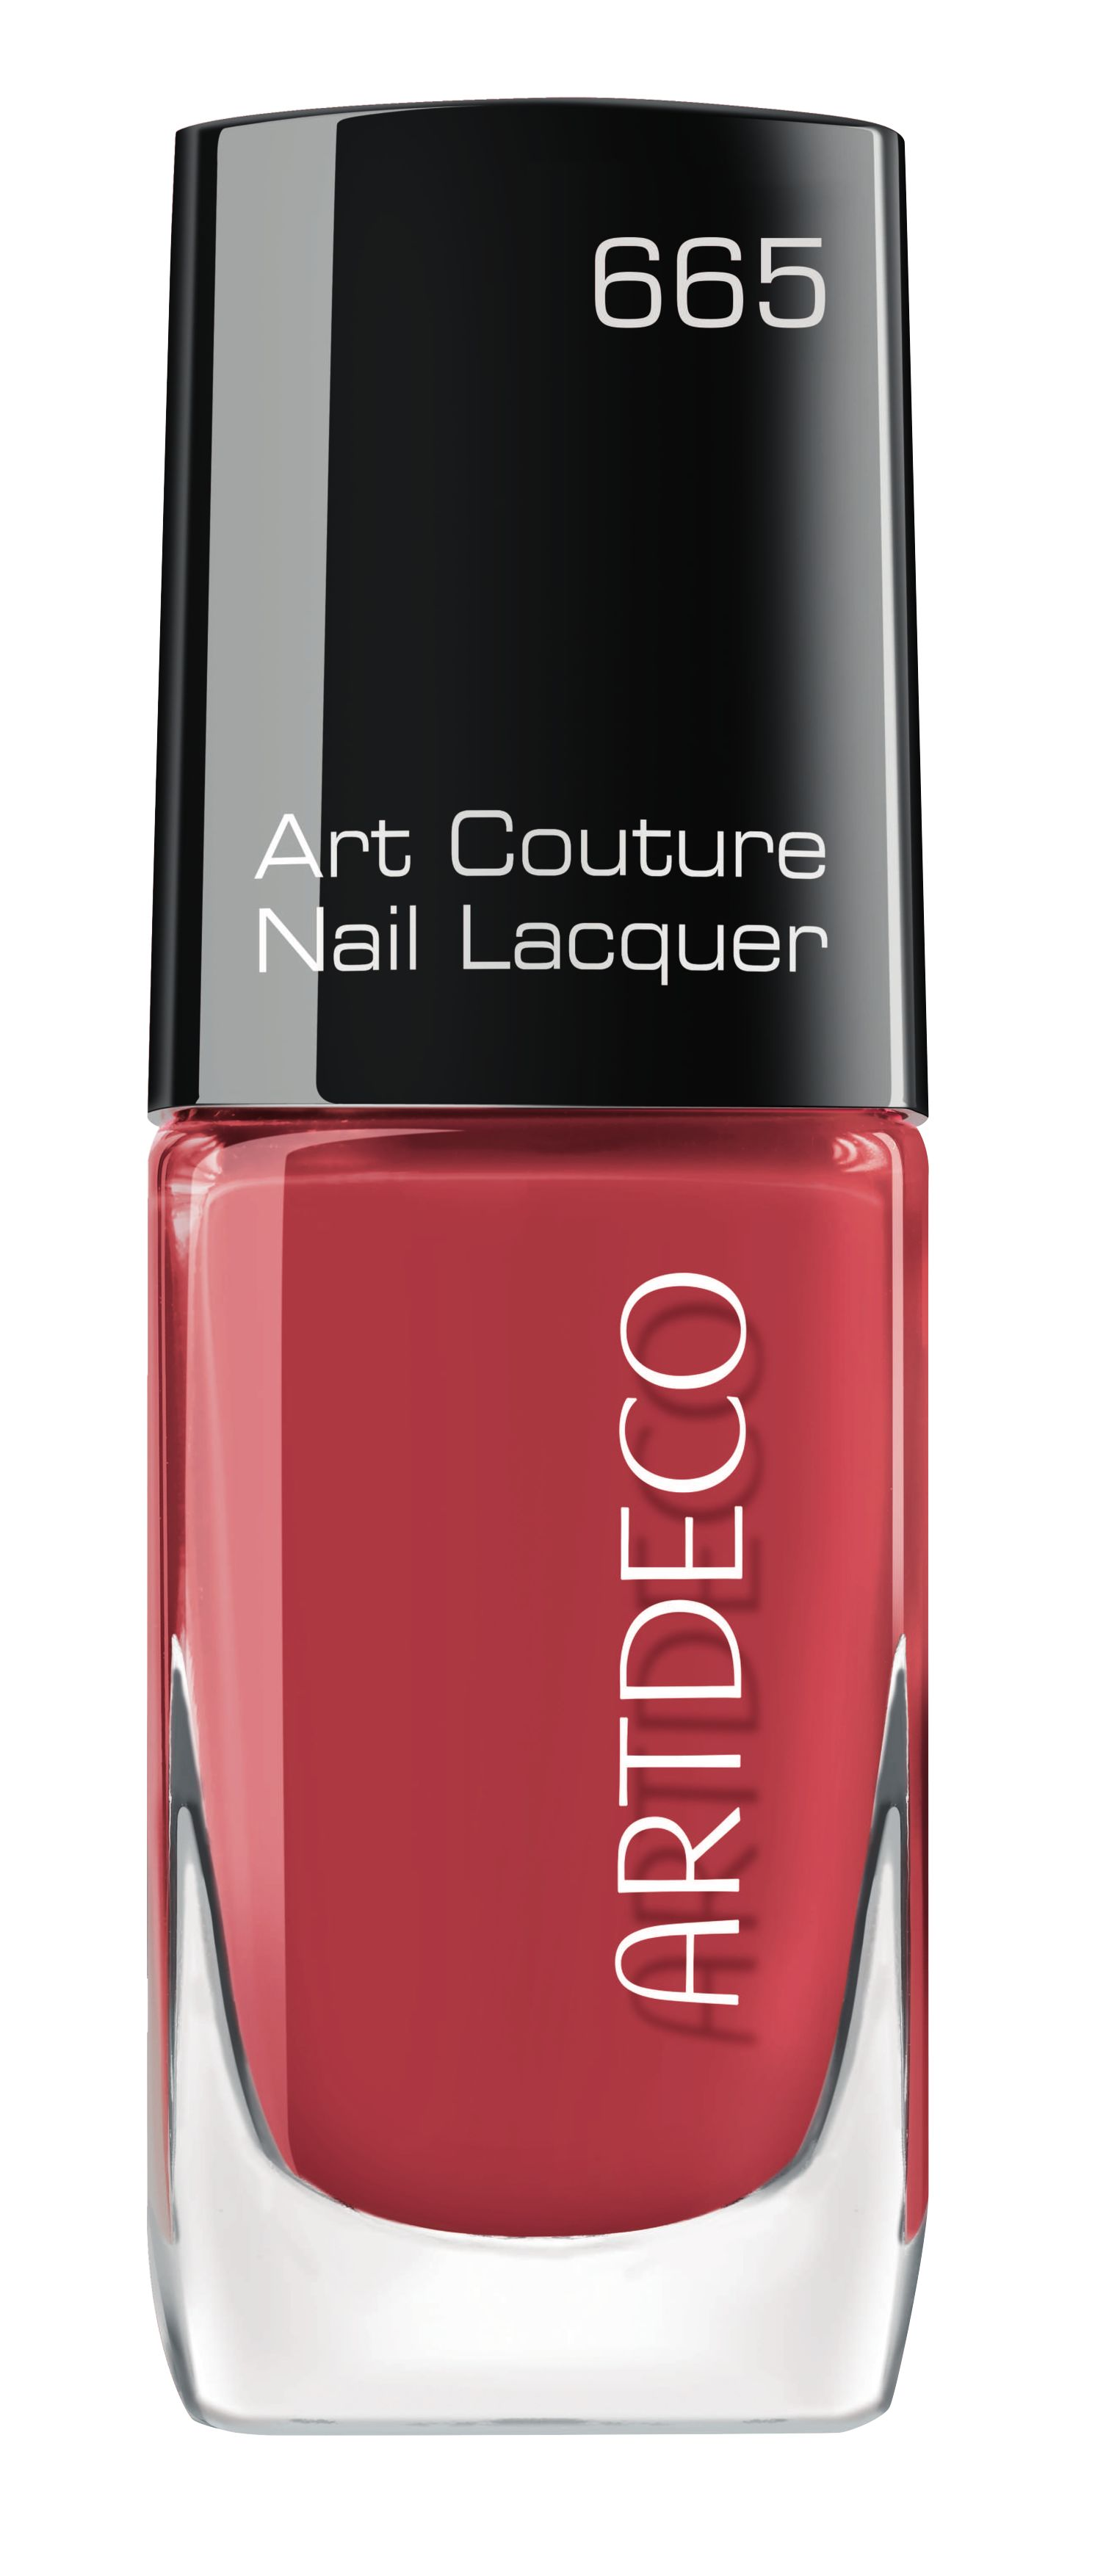 Art Couture Nail Lacquer #665 brick red - Make-up |Bestel nu online bij  Beauty Doctor